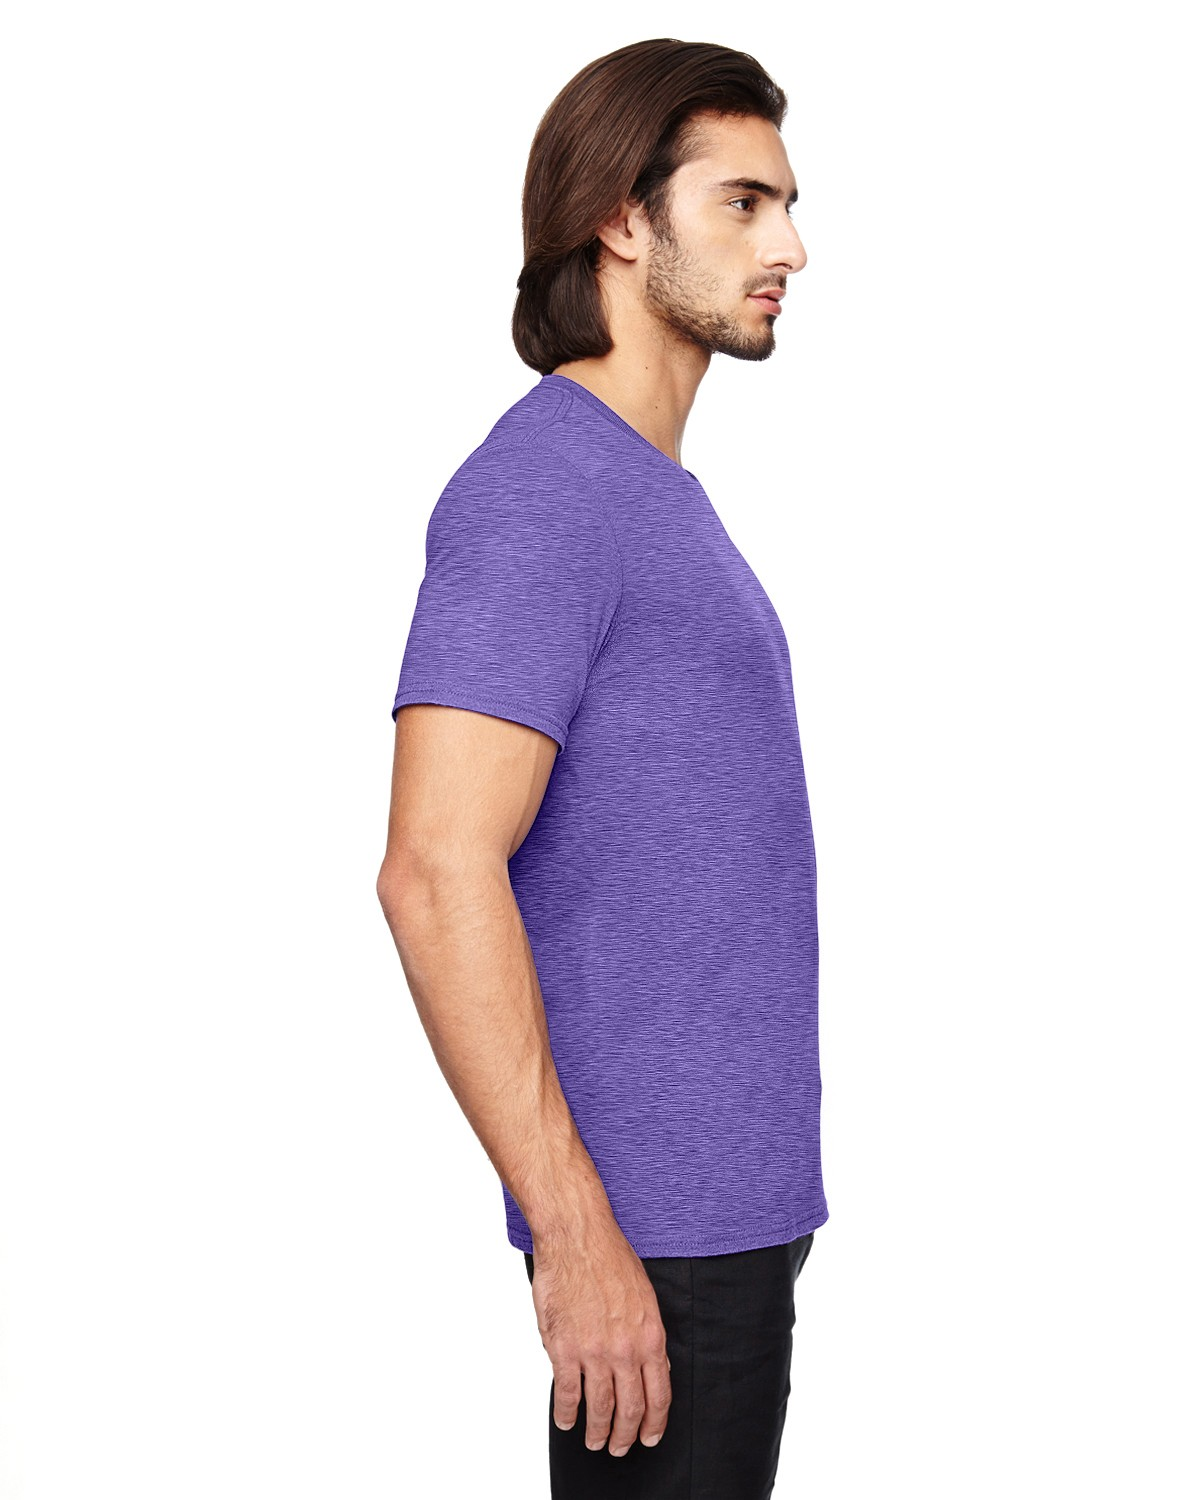 6750 Anvil HEATHER PURPLE